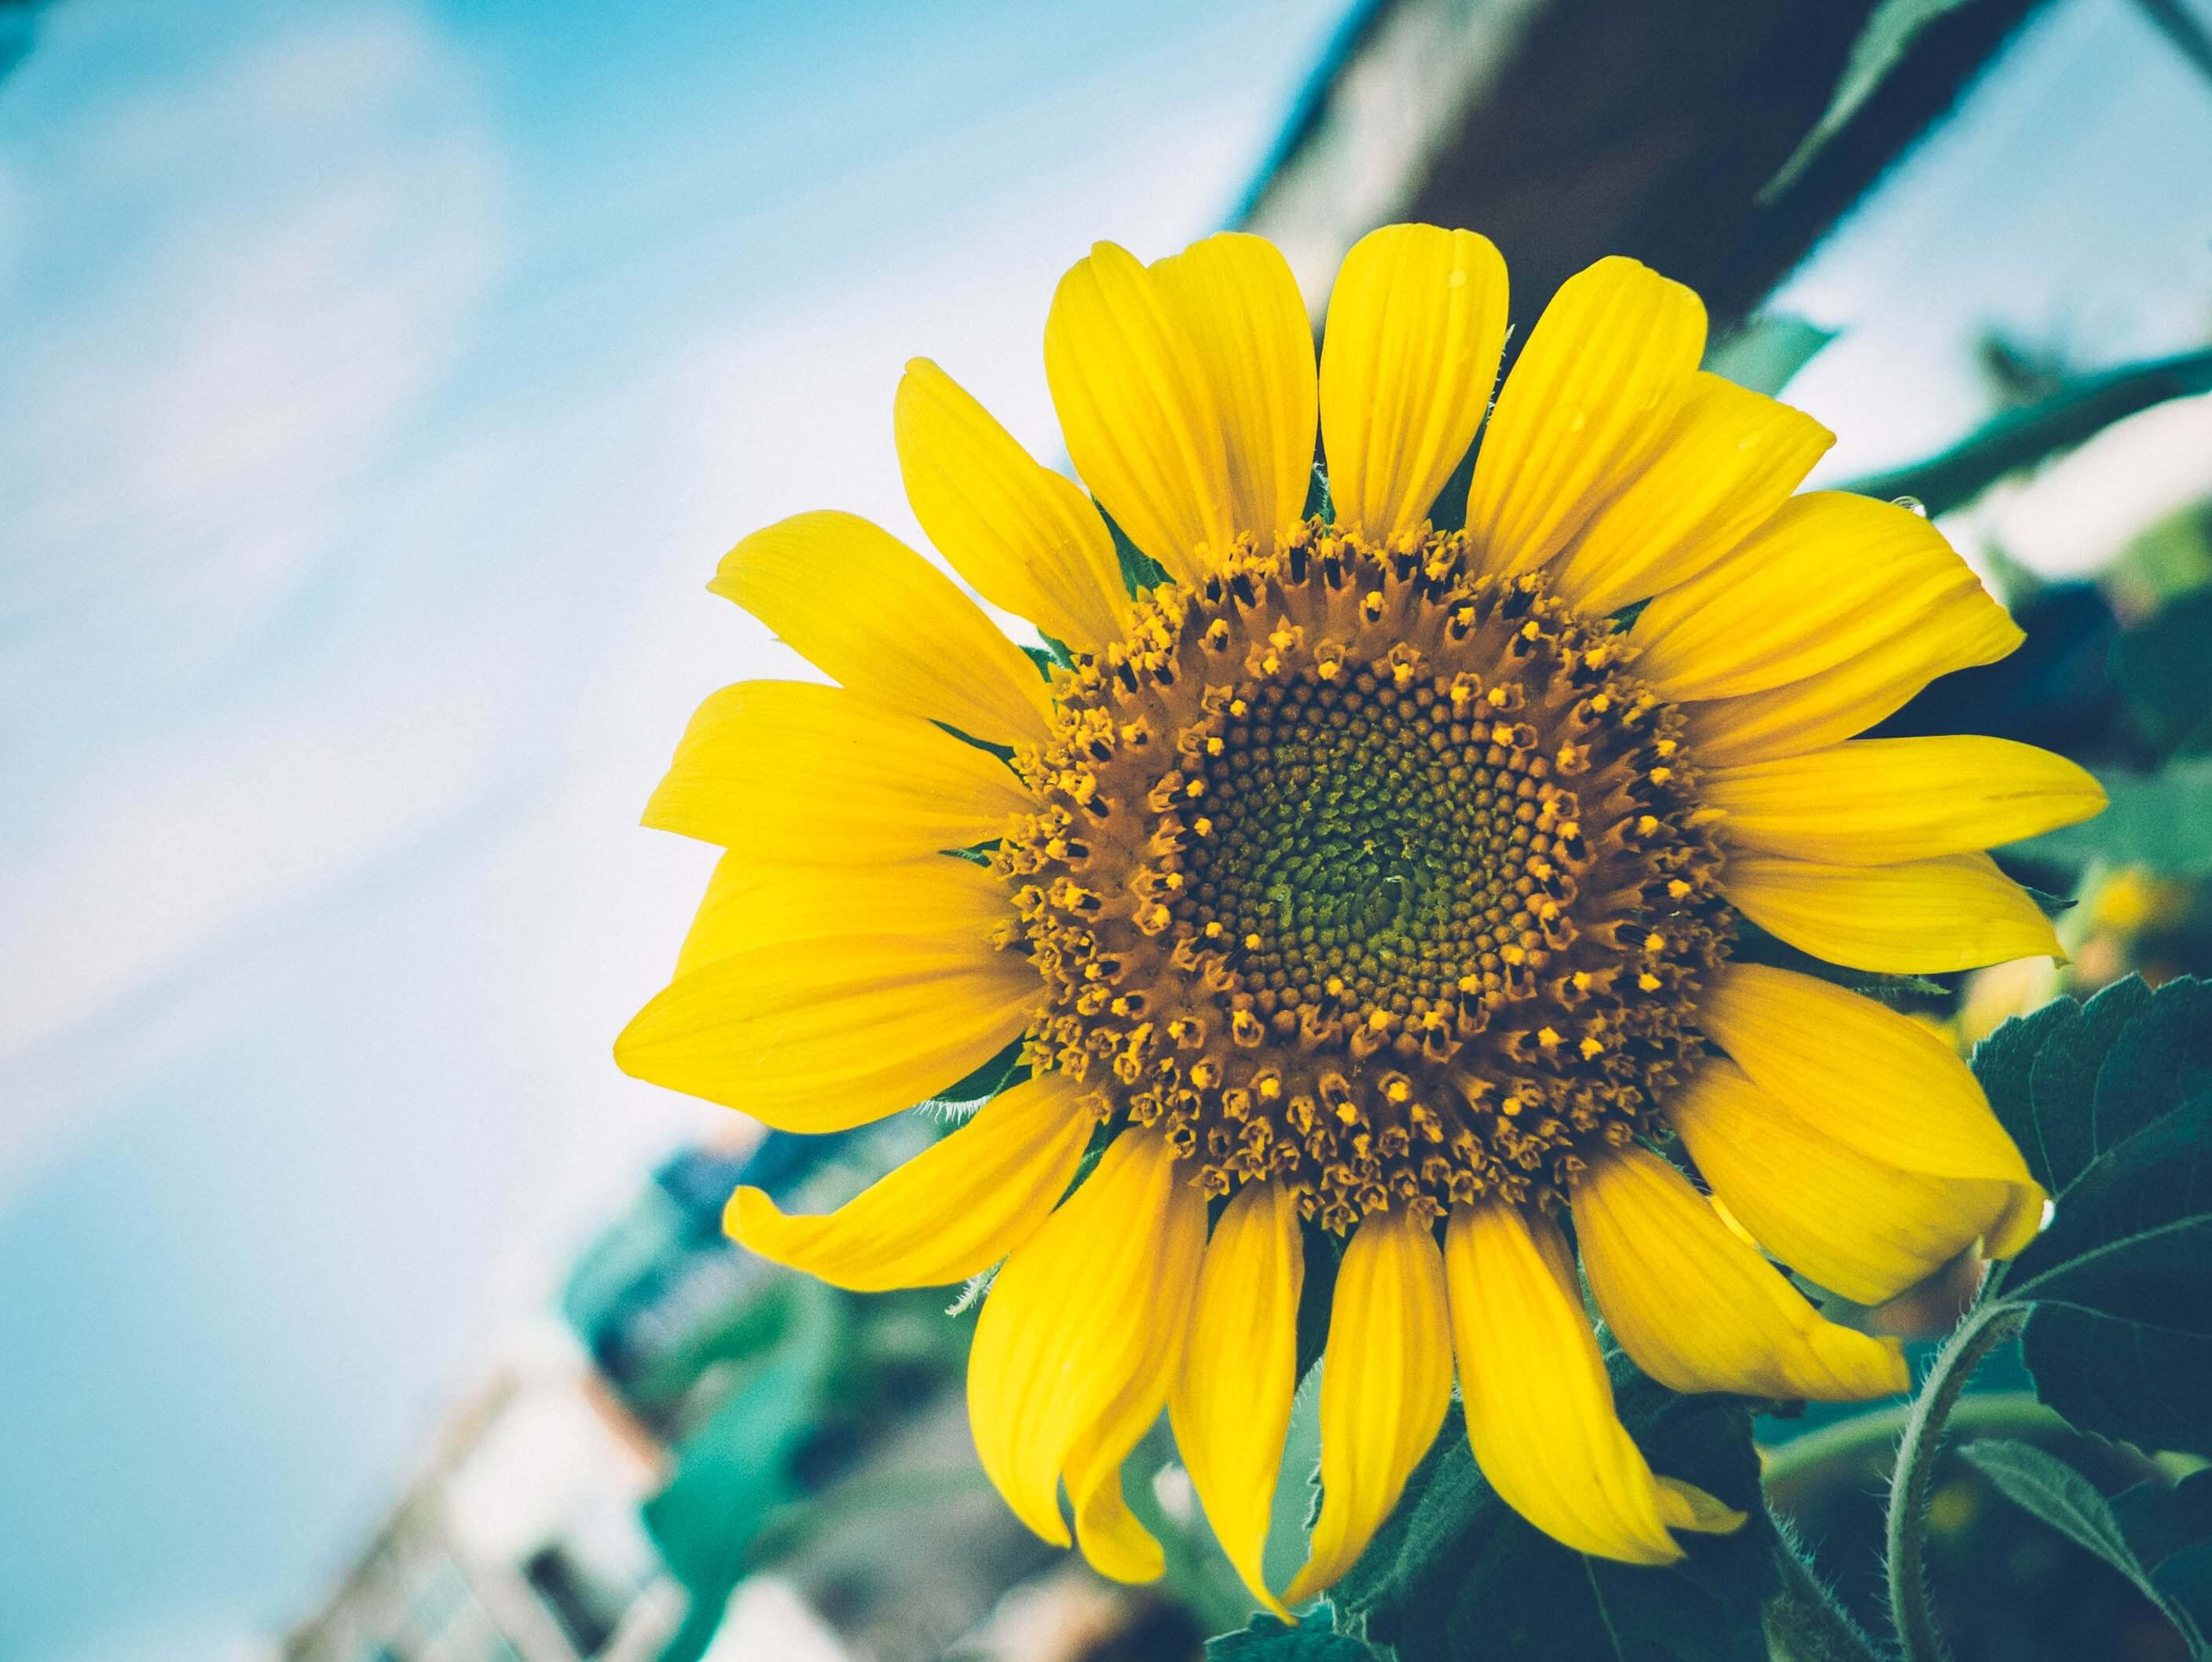 Why And How To Use Sunflower Lecithin To Make Edibles